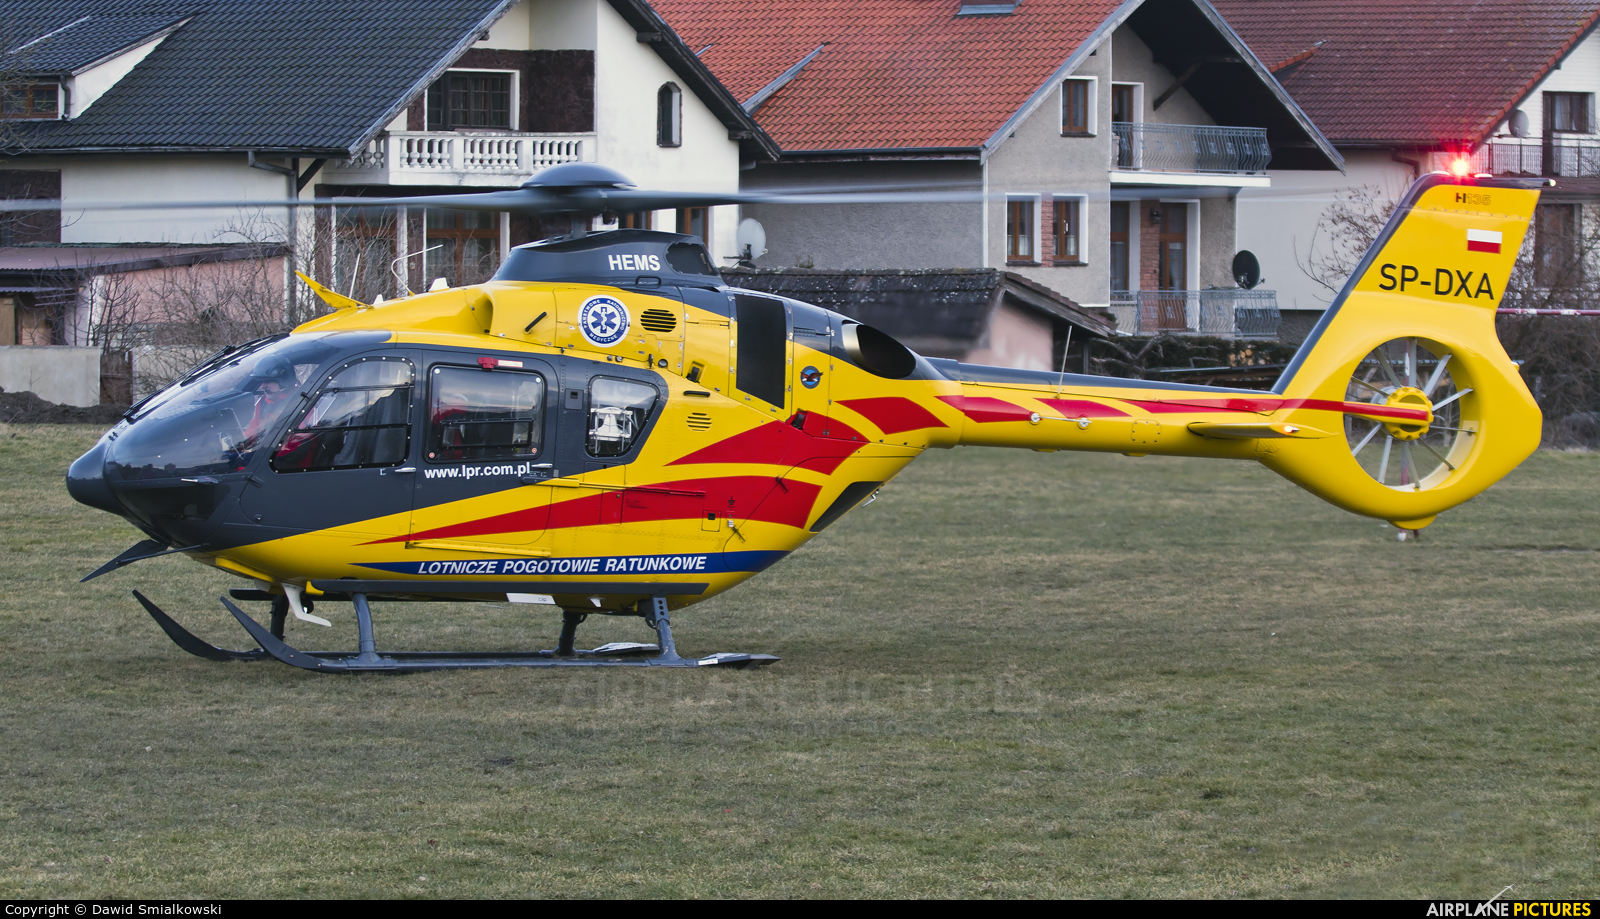 Polish Medical Air Rescue - Lotnicze Pogotowie Ratunkowe SP-DXA aircraft at Undisclosed location